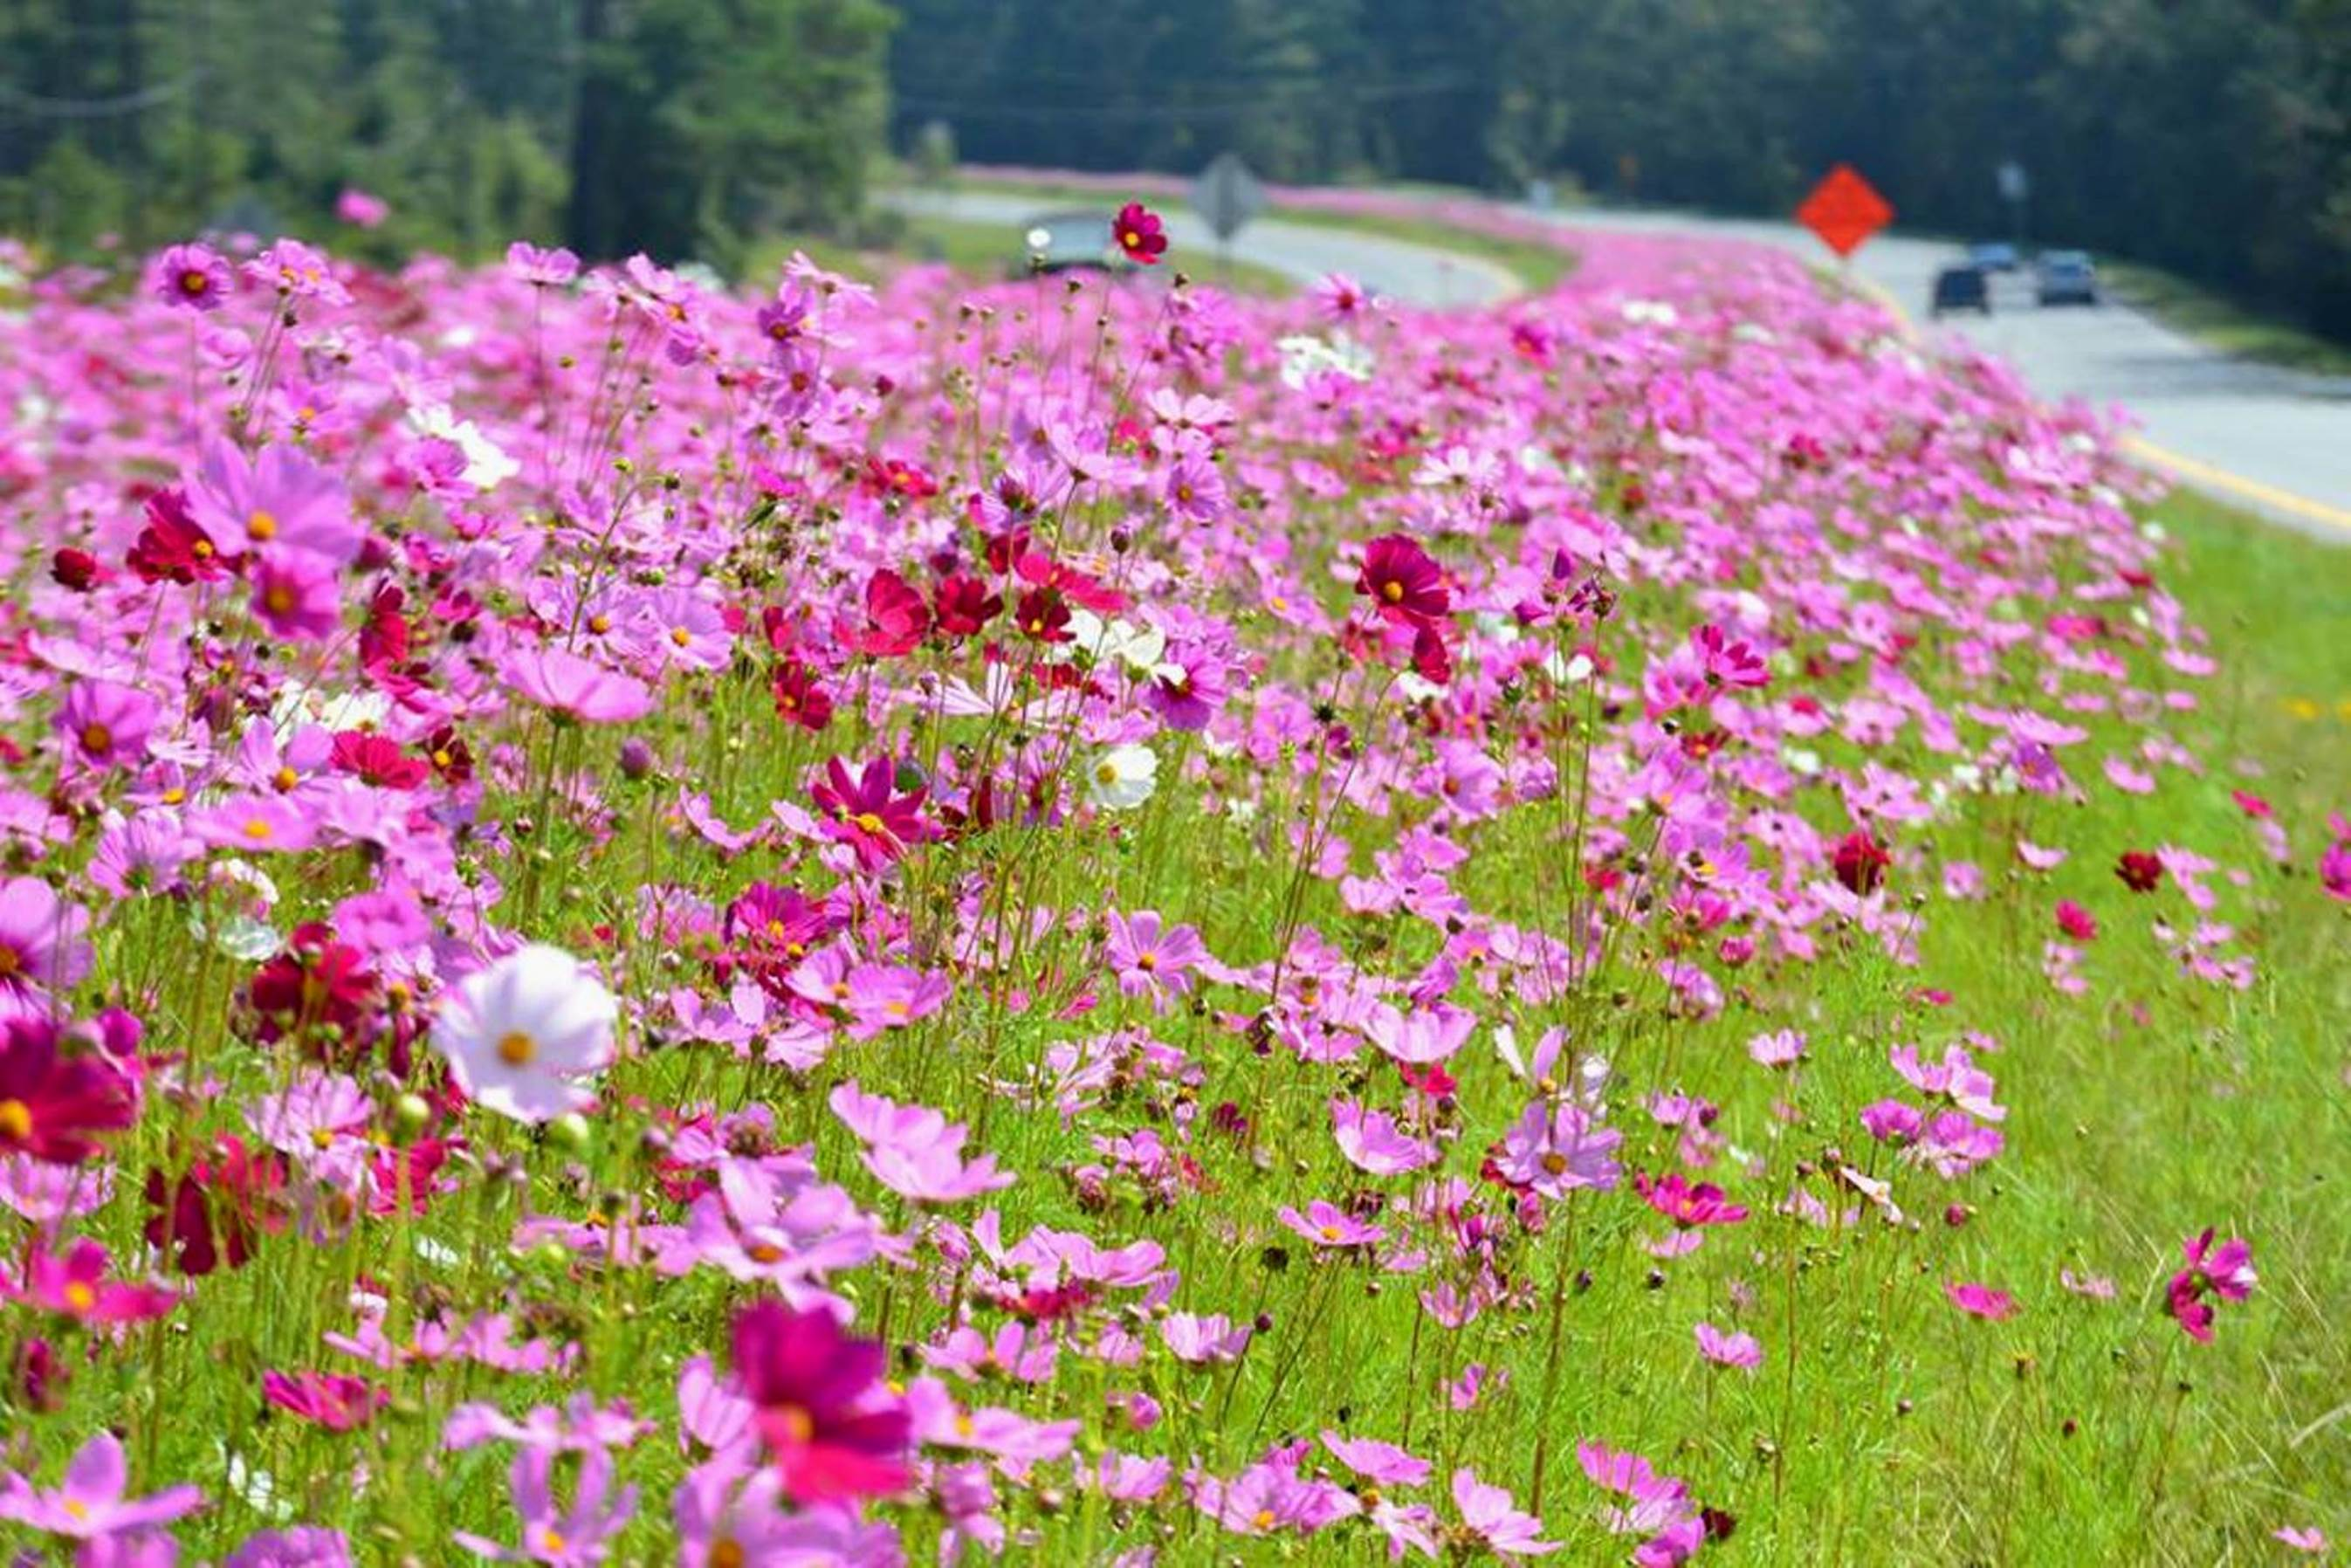 Caes newswire roadside show georgia highways dazzle with color from old fashioned cosmos these flowers arent perennials but they do come back through reseeding izmirmasajfo Gallery